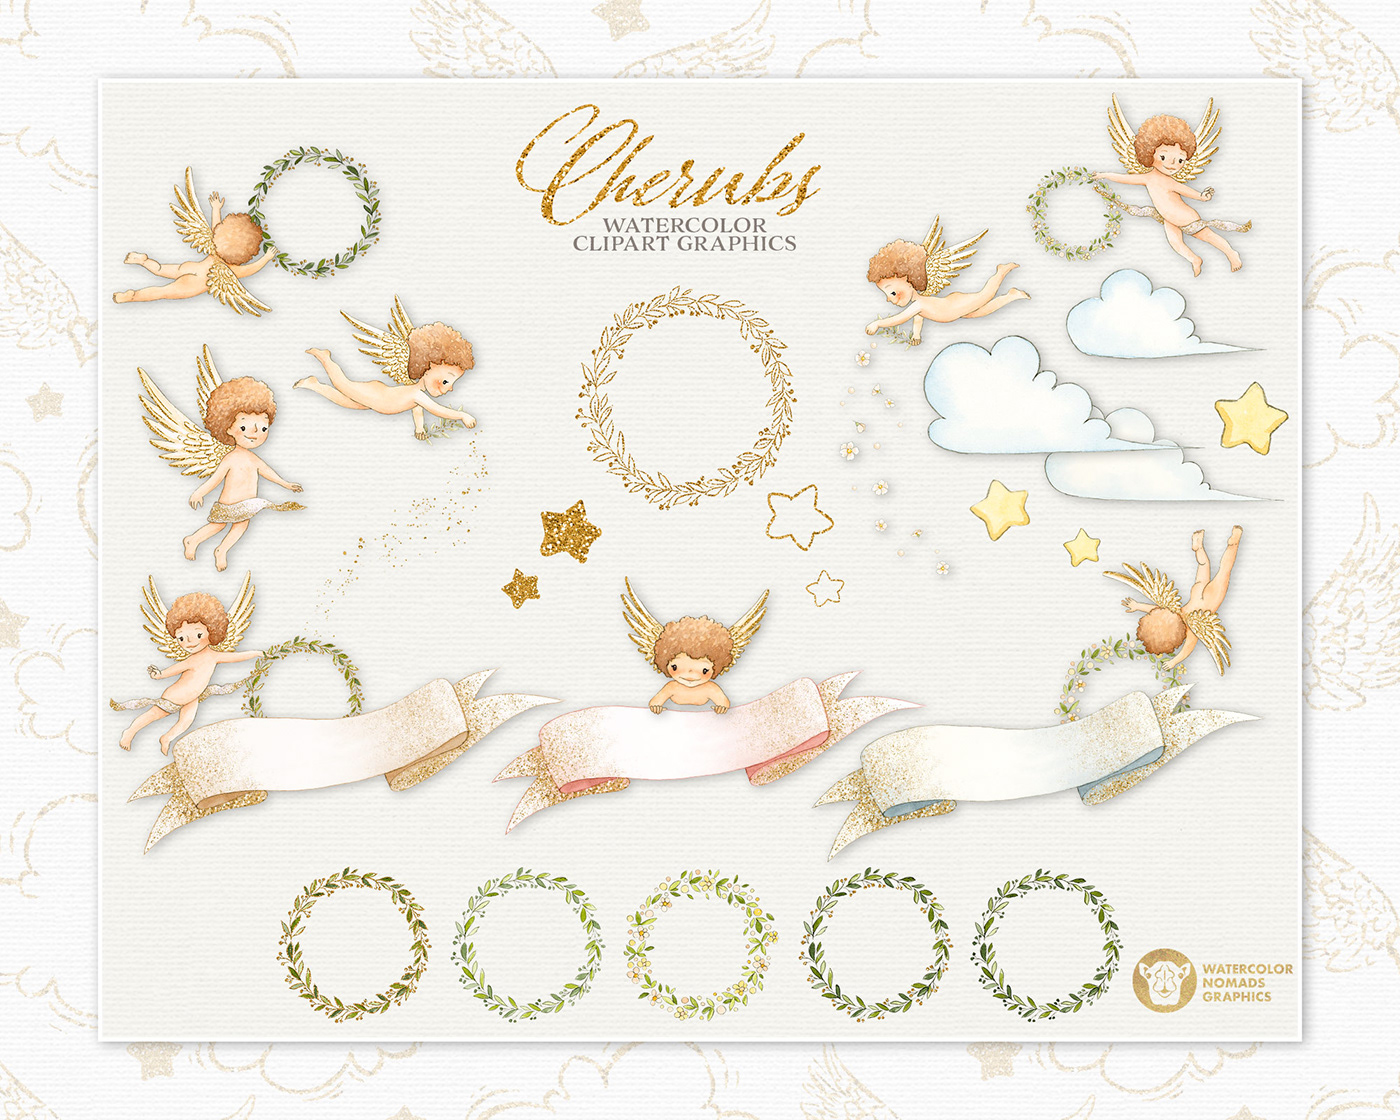 cherub illustration kids illustration childrens illustration baby angels watercolor and ink party stationery design Baby Textile  baby clothing watercolor graphics